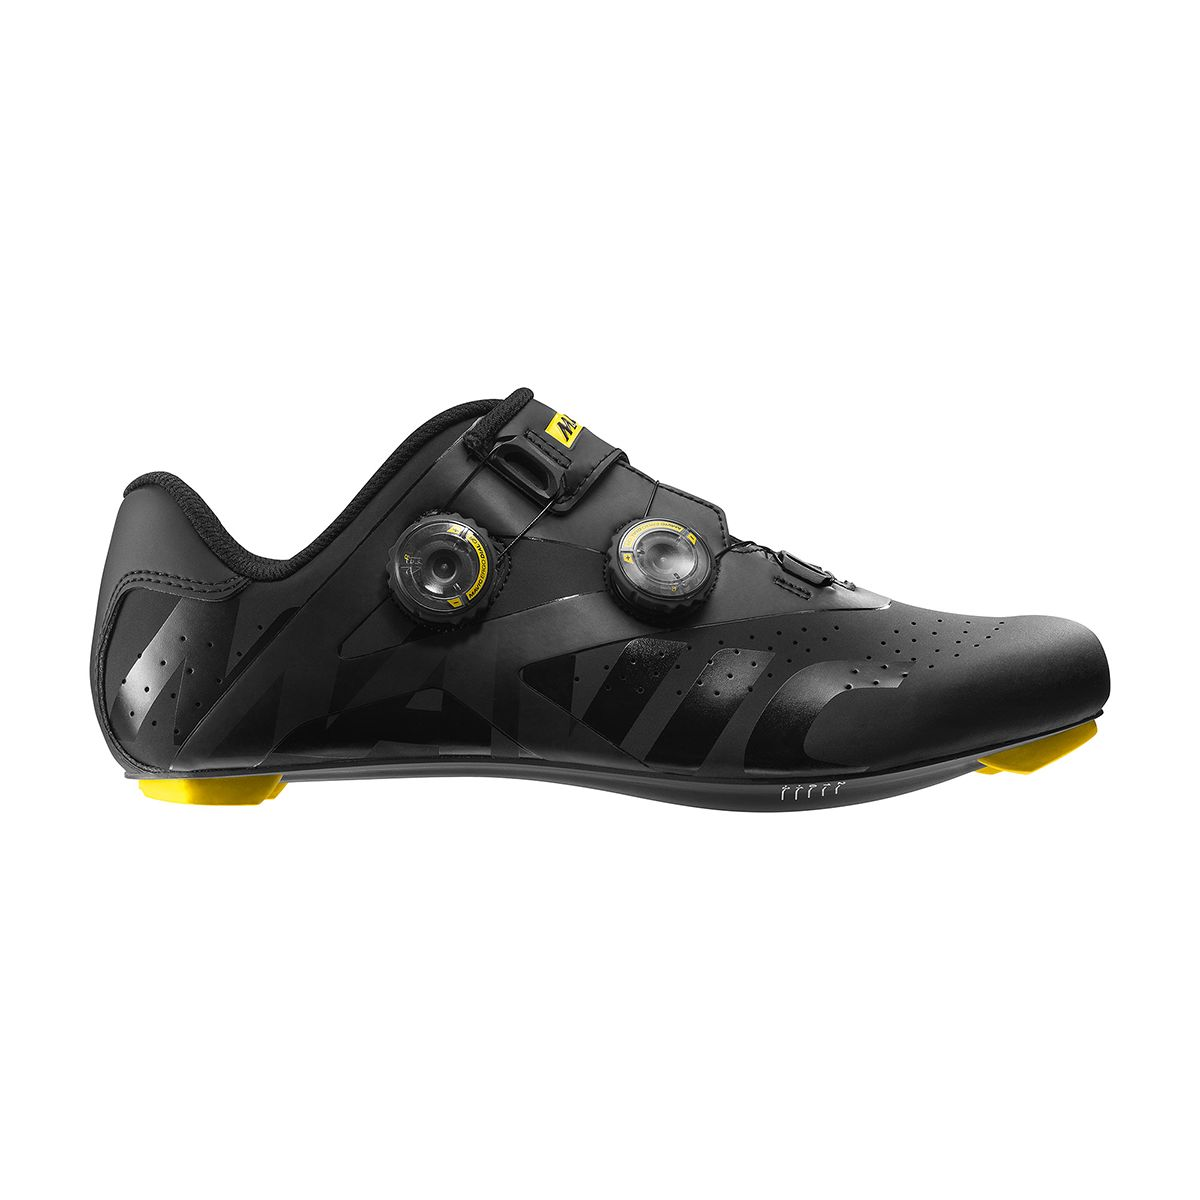 MAVIC Cosmic Pro road shoes | Shoes and overlays